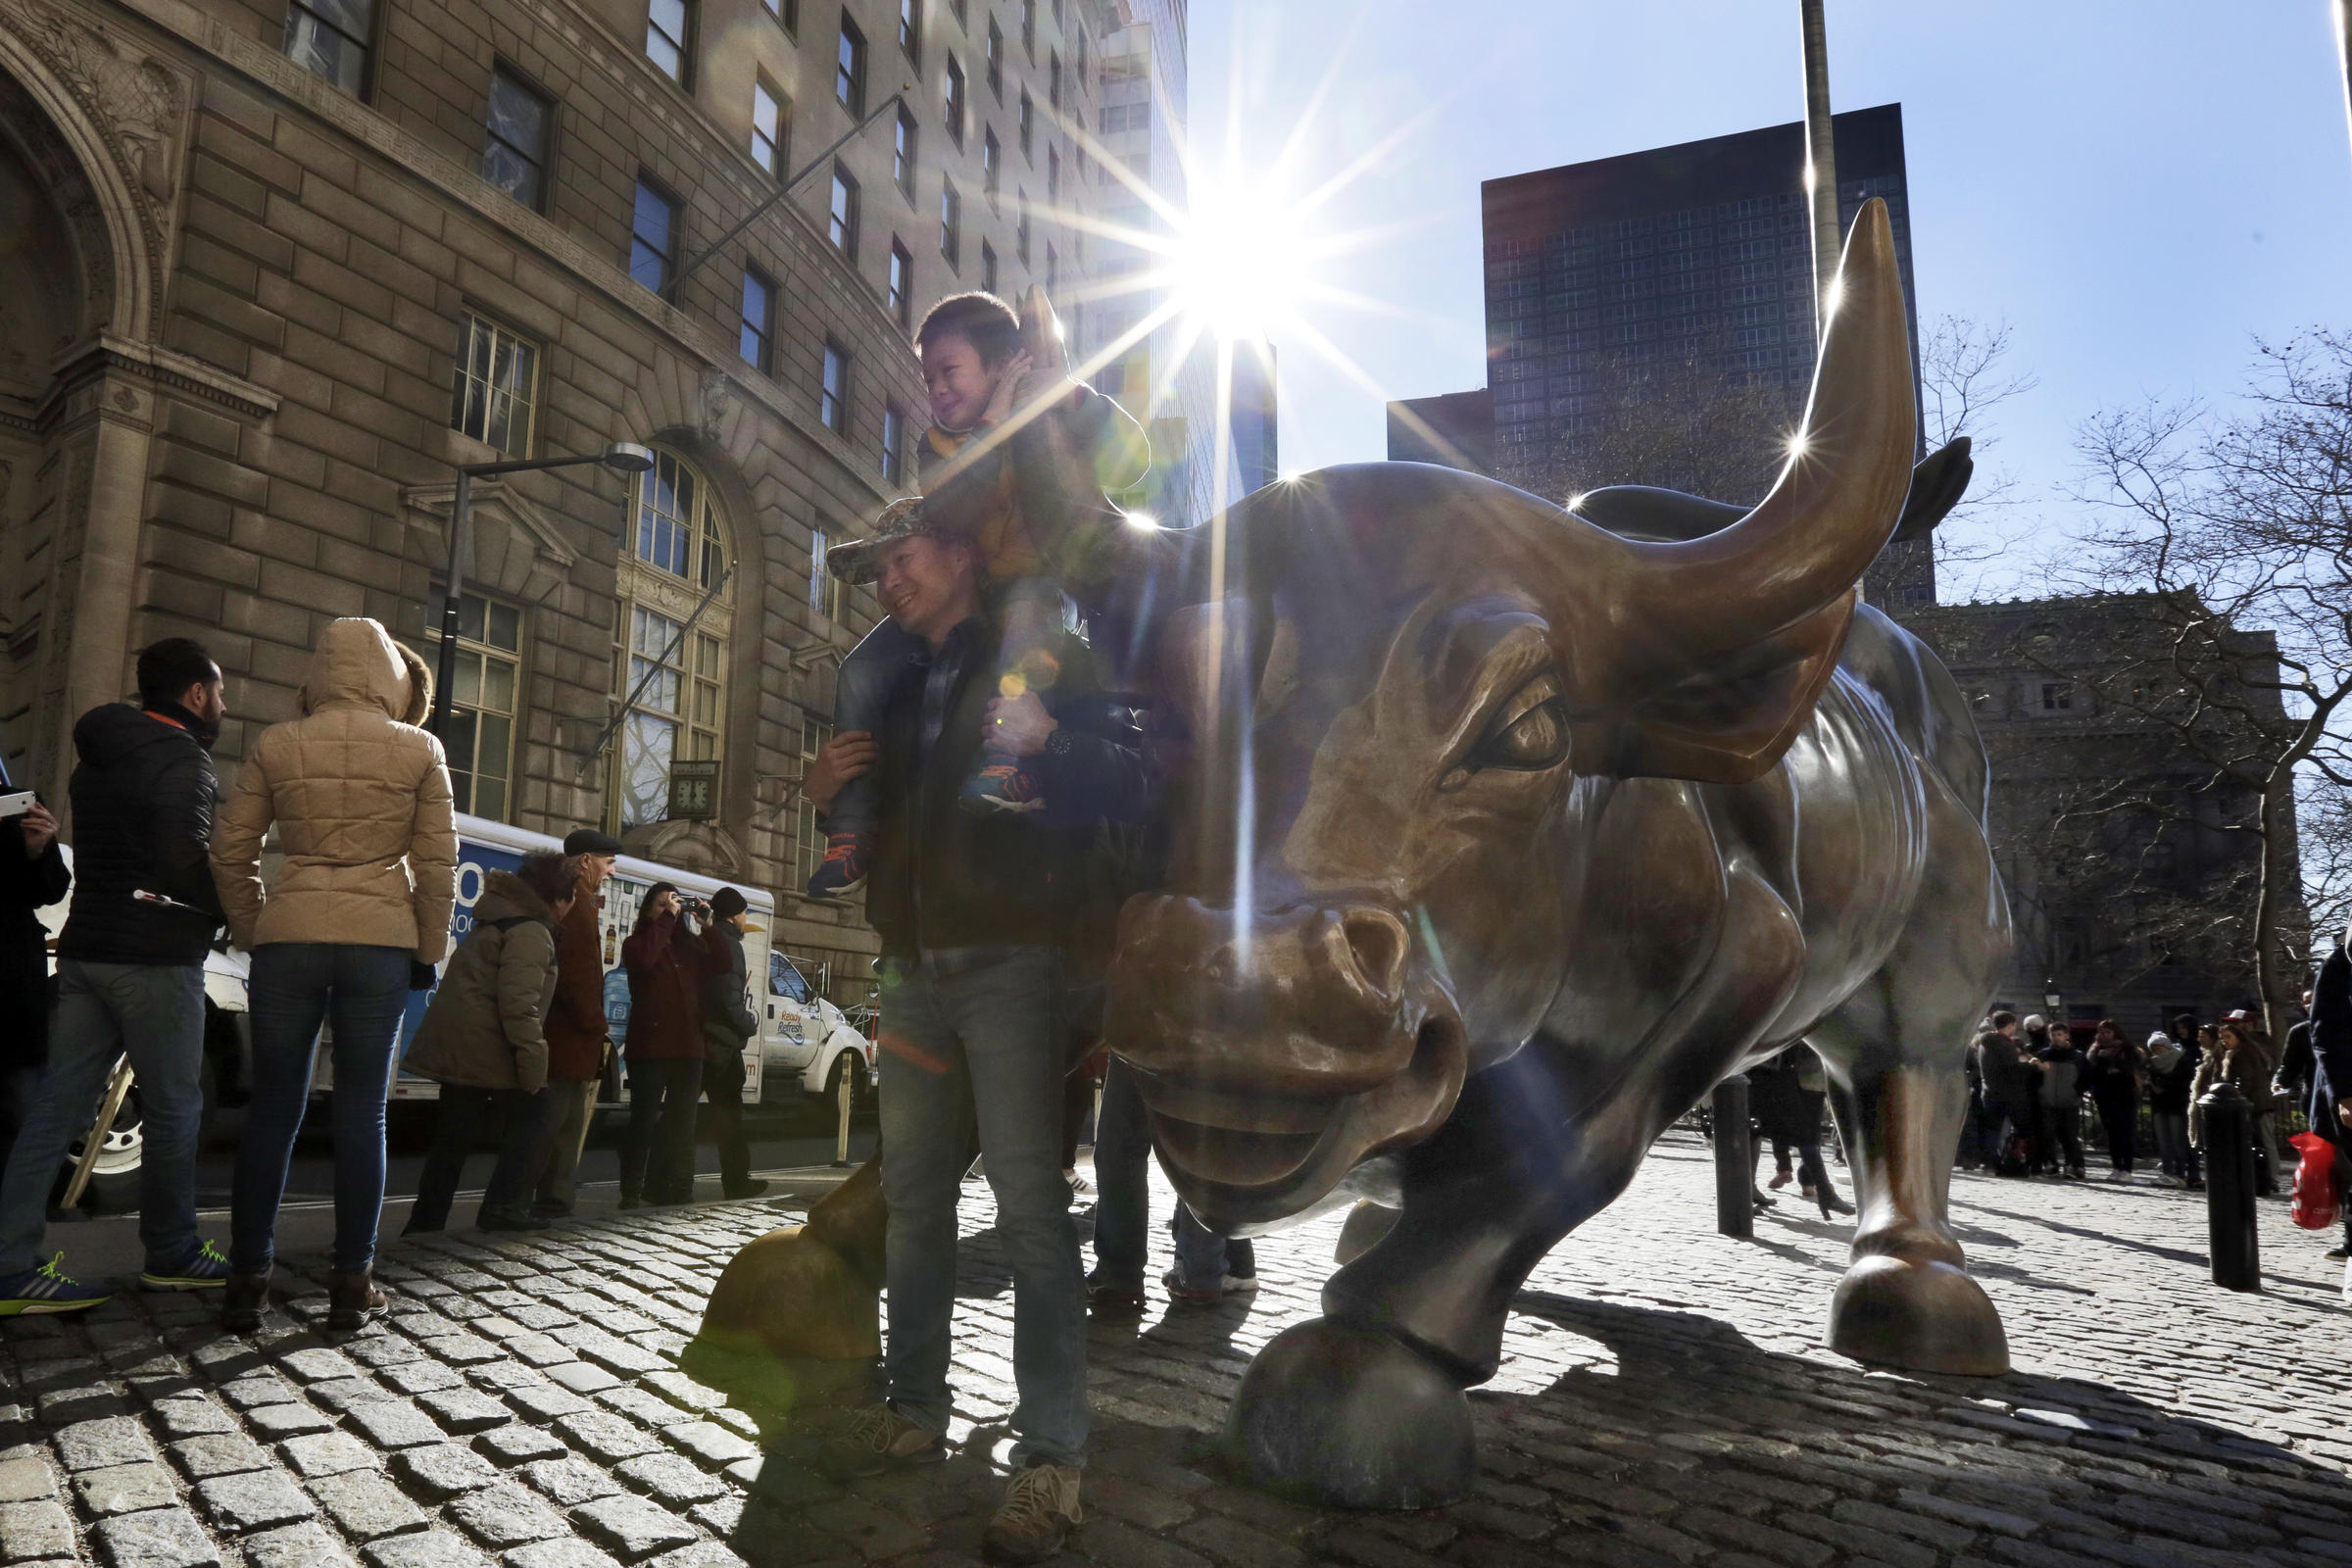 Wall Street projected to see profit increases over 2016: Comptroller